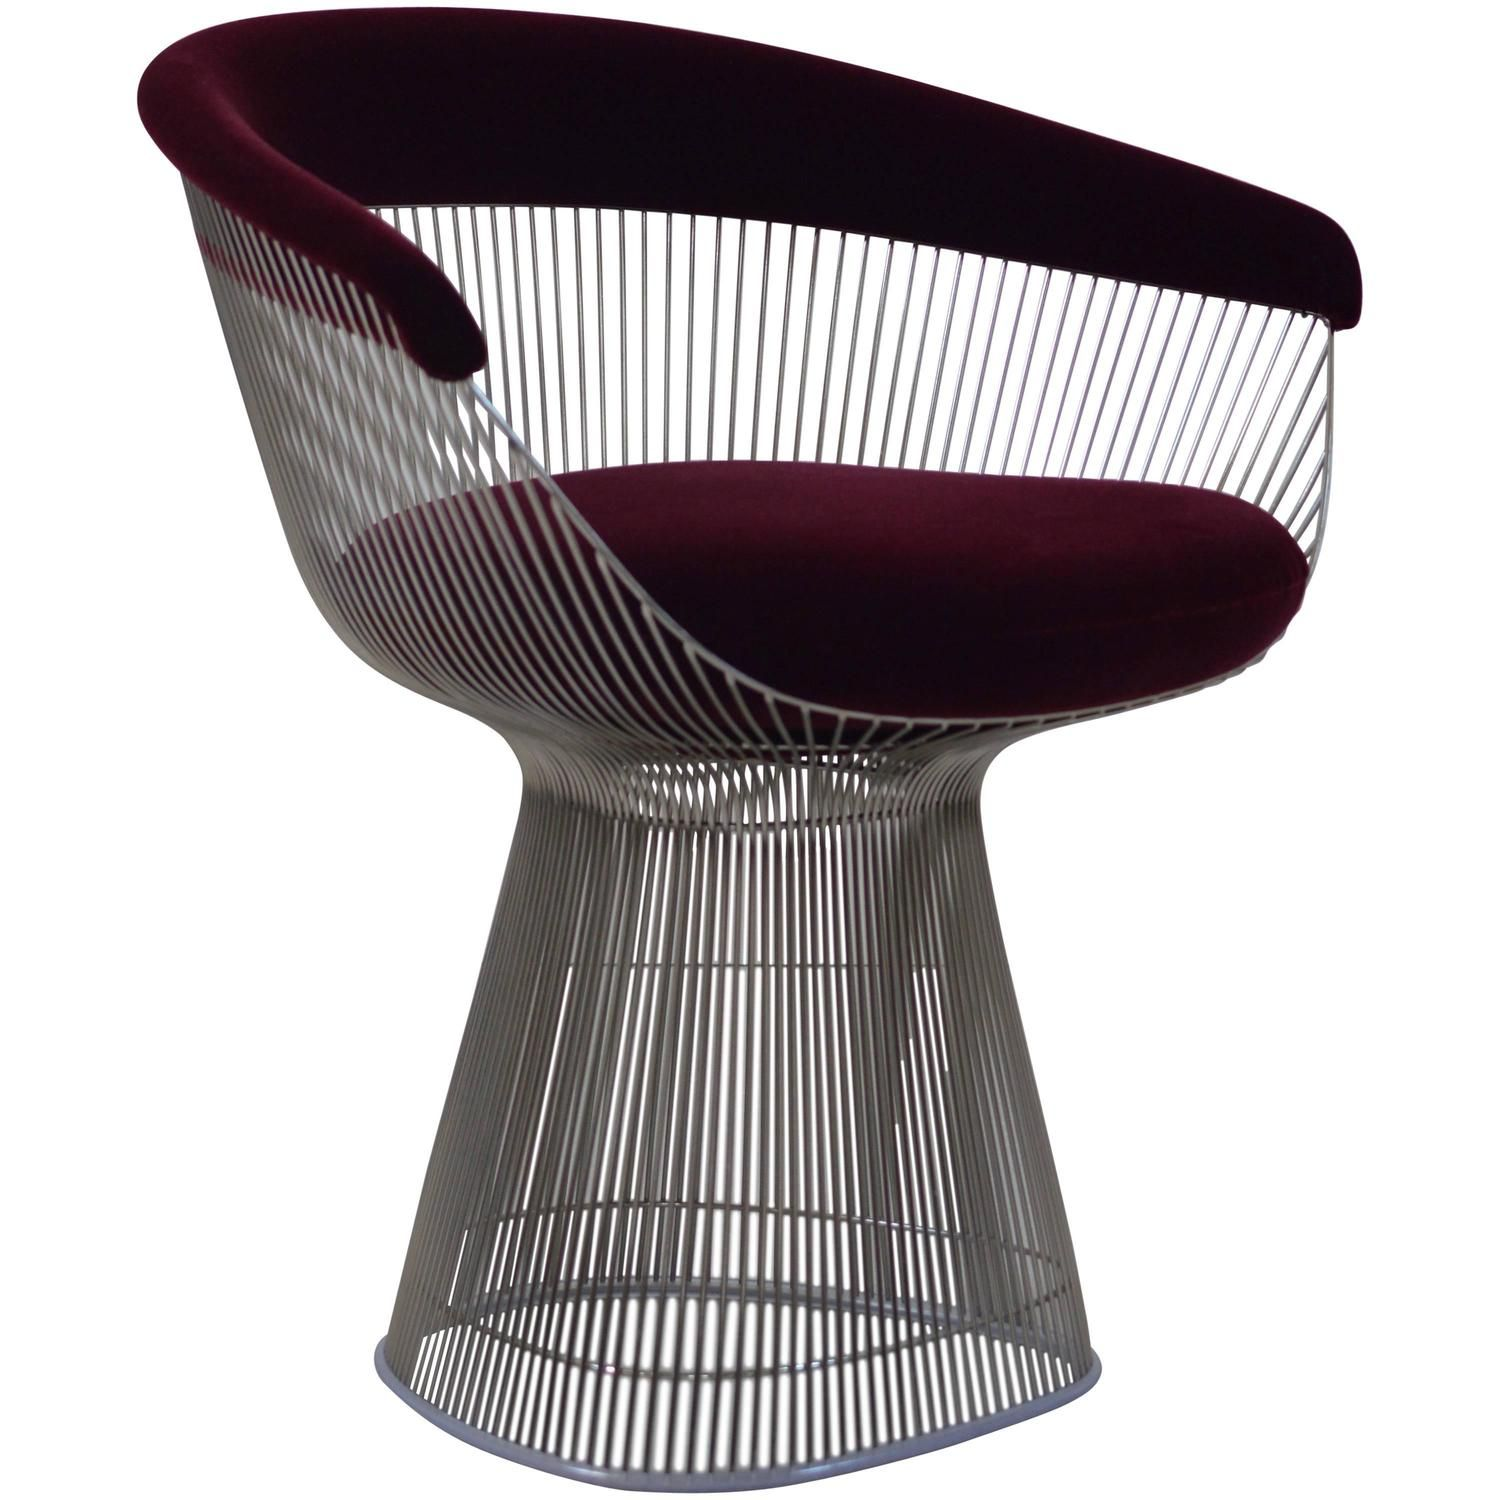 Burgundy Velvet Warren Platner Wire Chair For Knoll